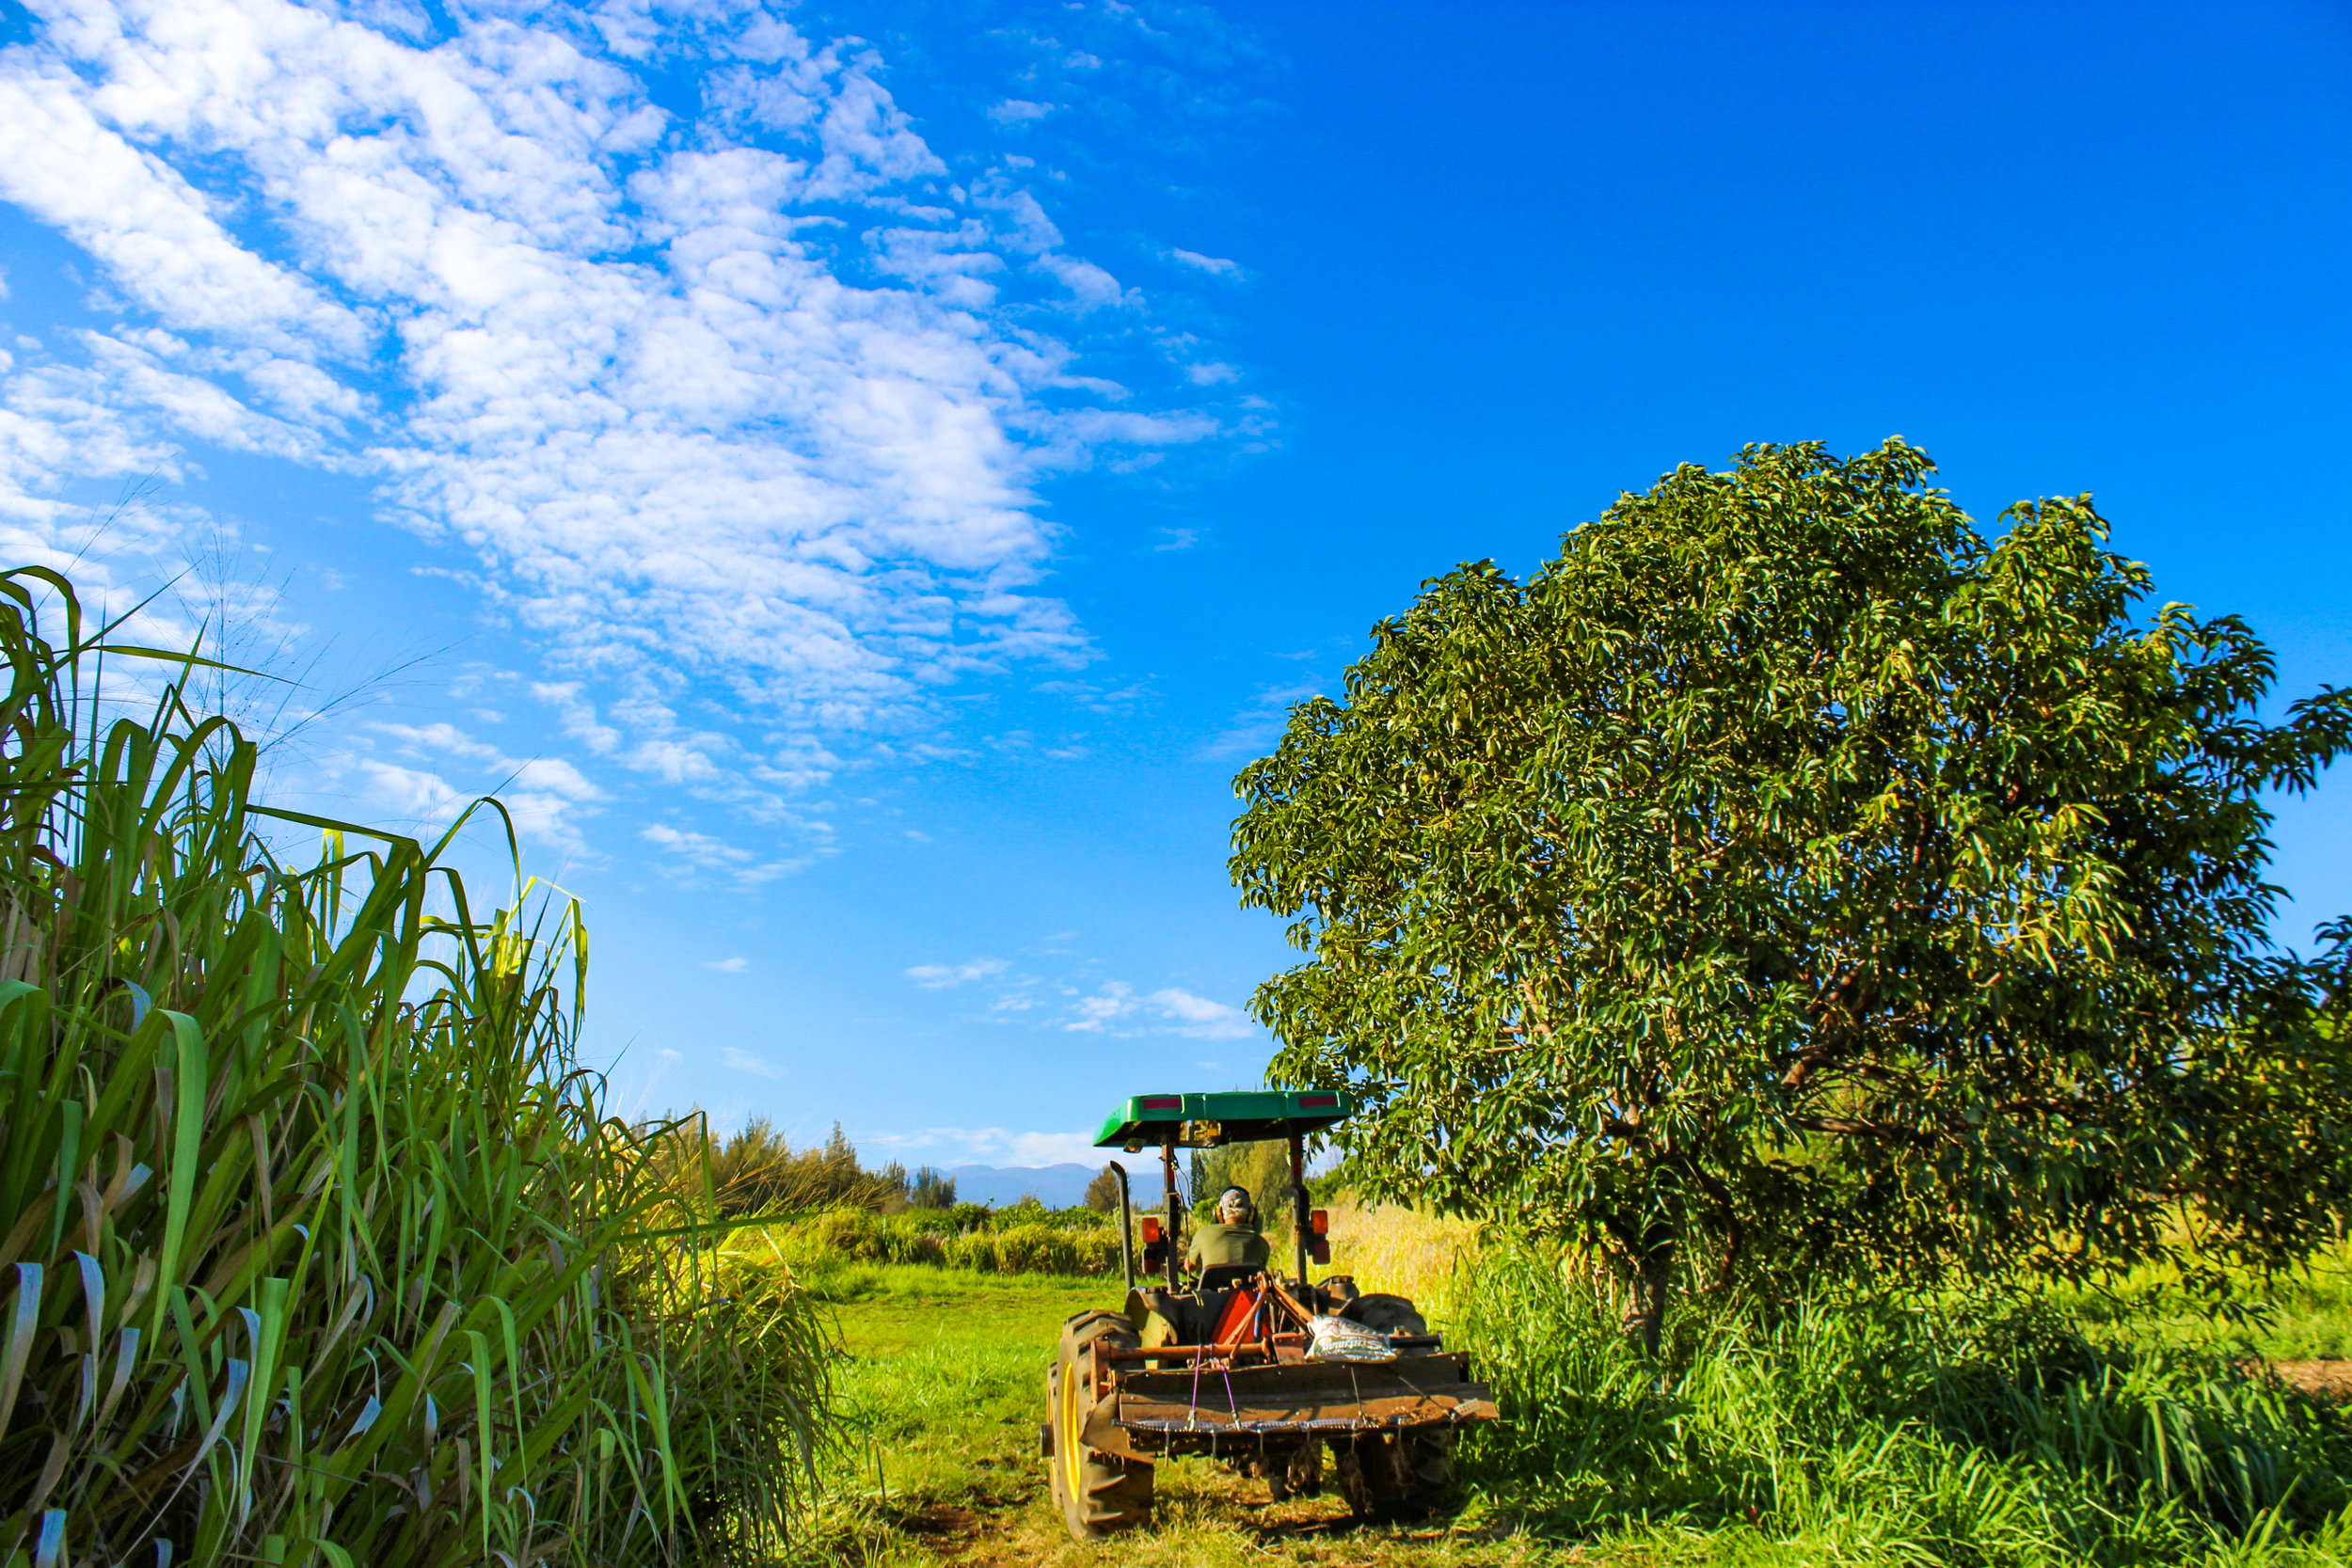 Michael on his tractor on the Mother Nature's Miracle farm in Pa`auilo with Mauna Kea in the background.